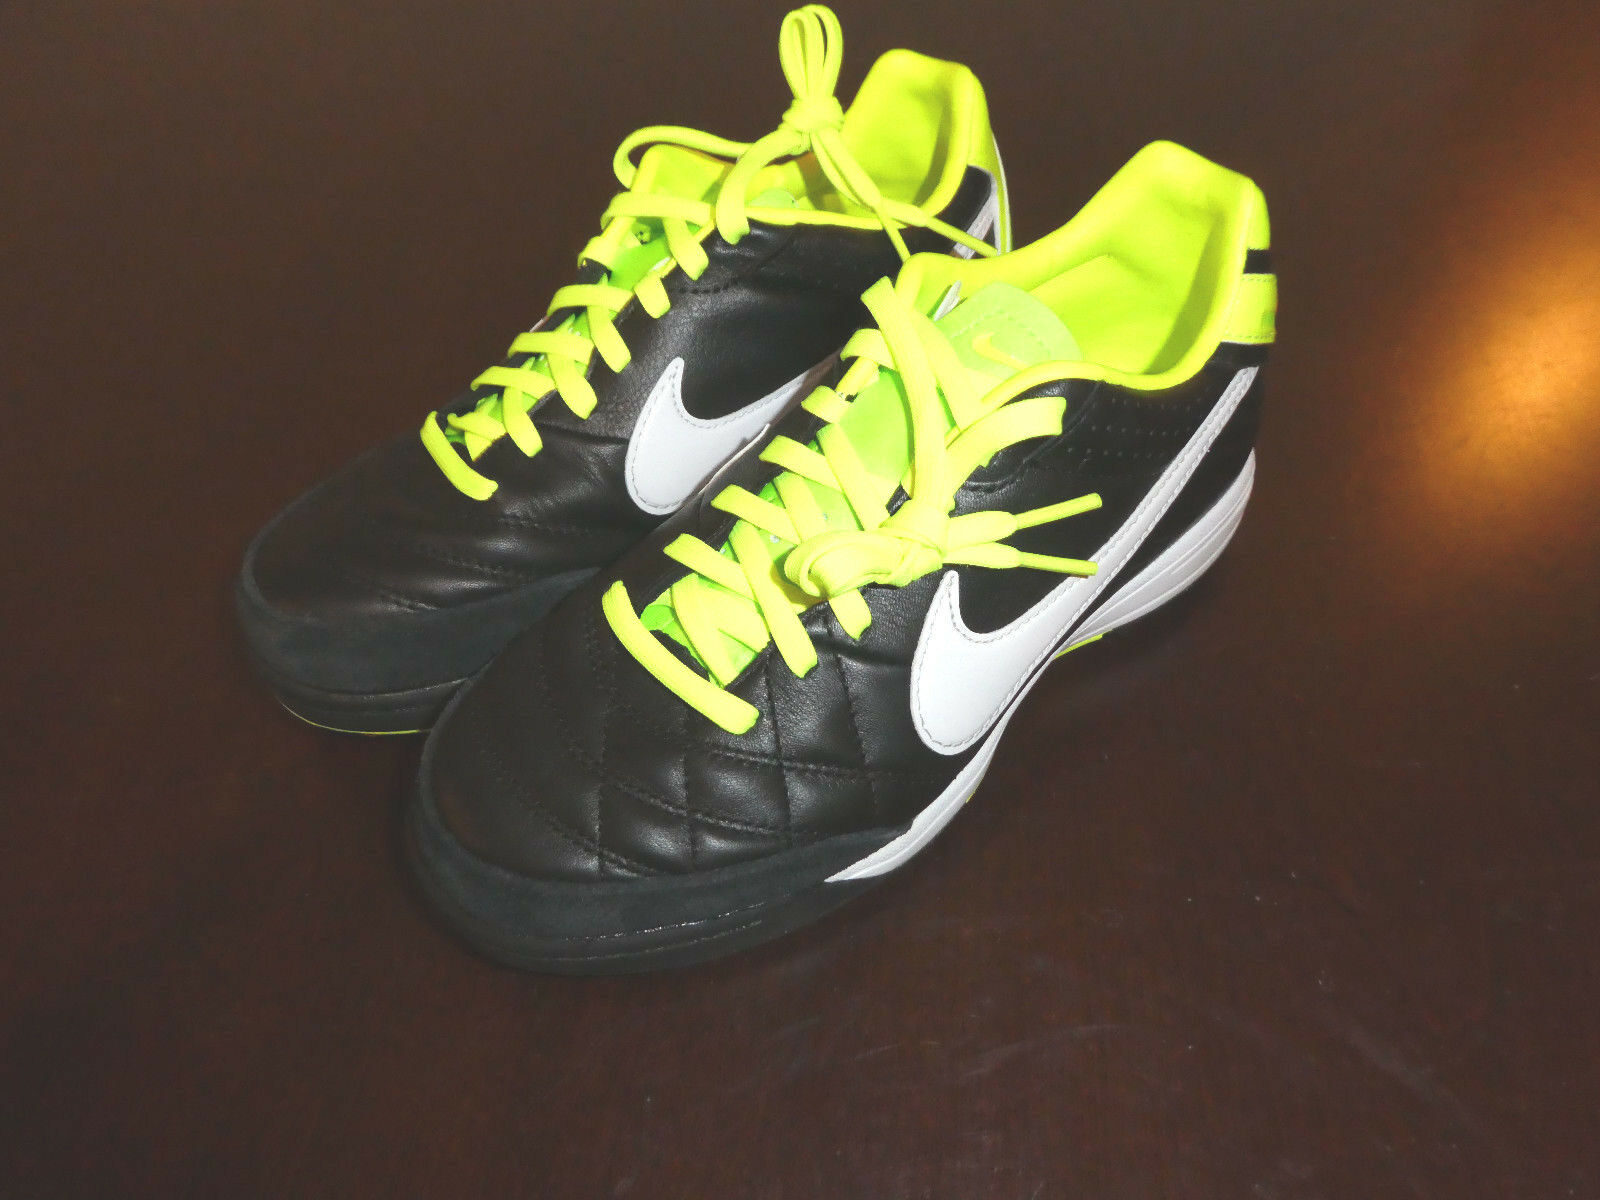 Nike Tiempo Mystic IV TF Turf 454314 soccer cleats cleats cleats zapatos nuevos 695351